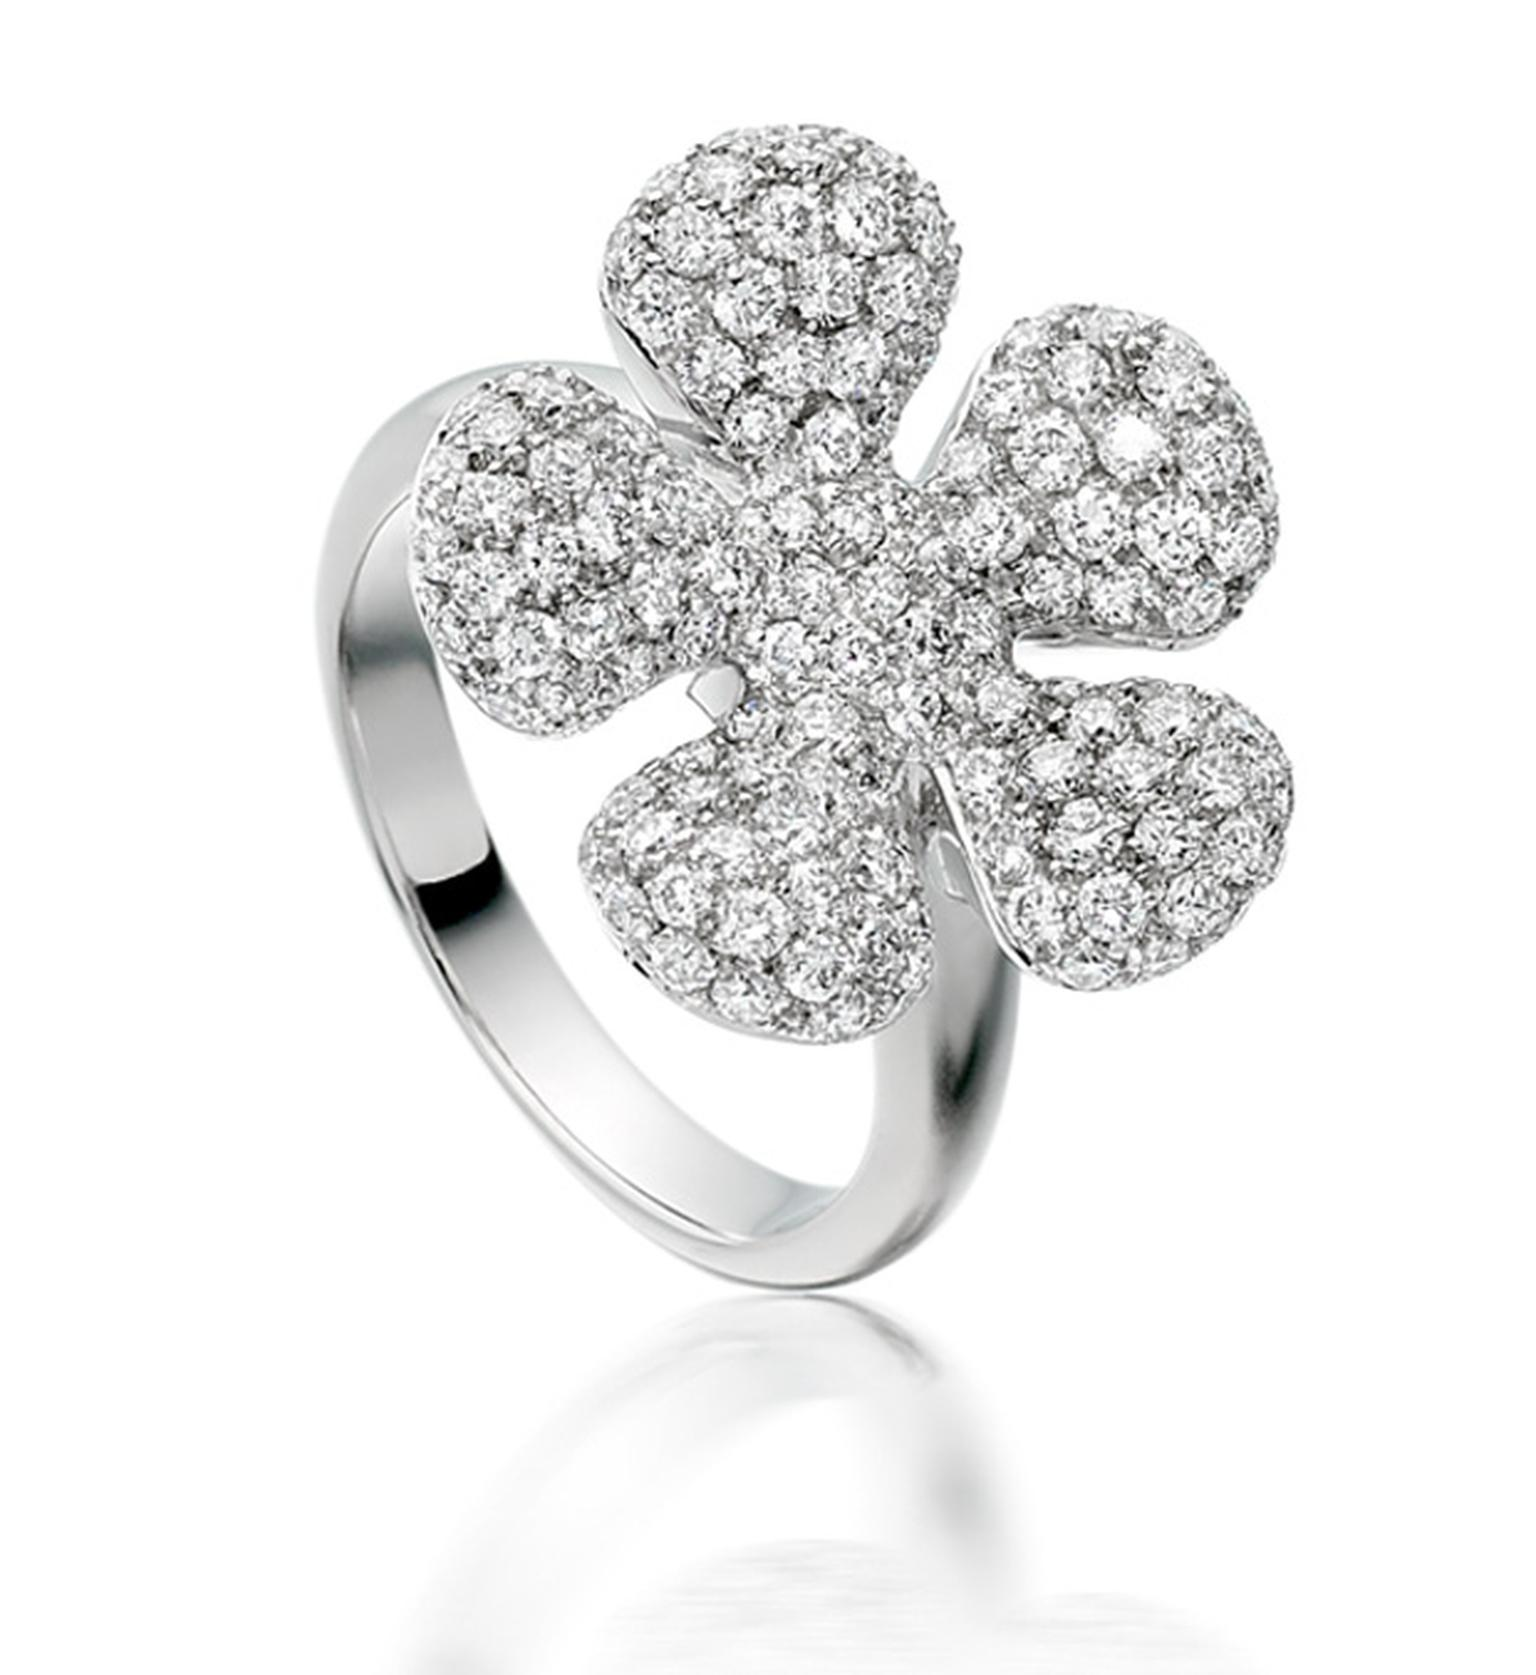 Astley Clarke Forget Me Not ring